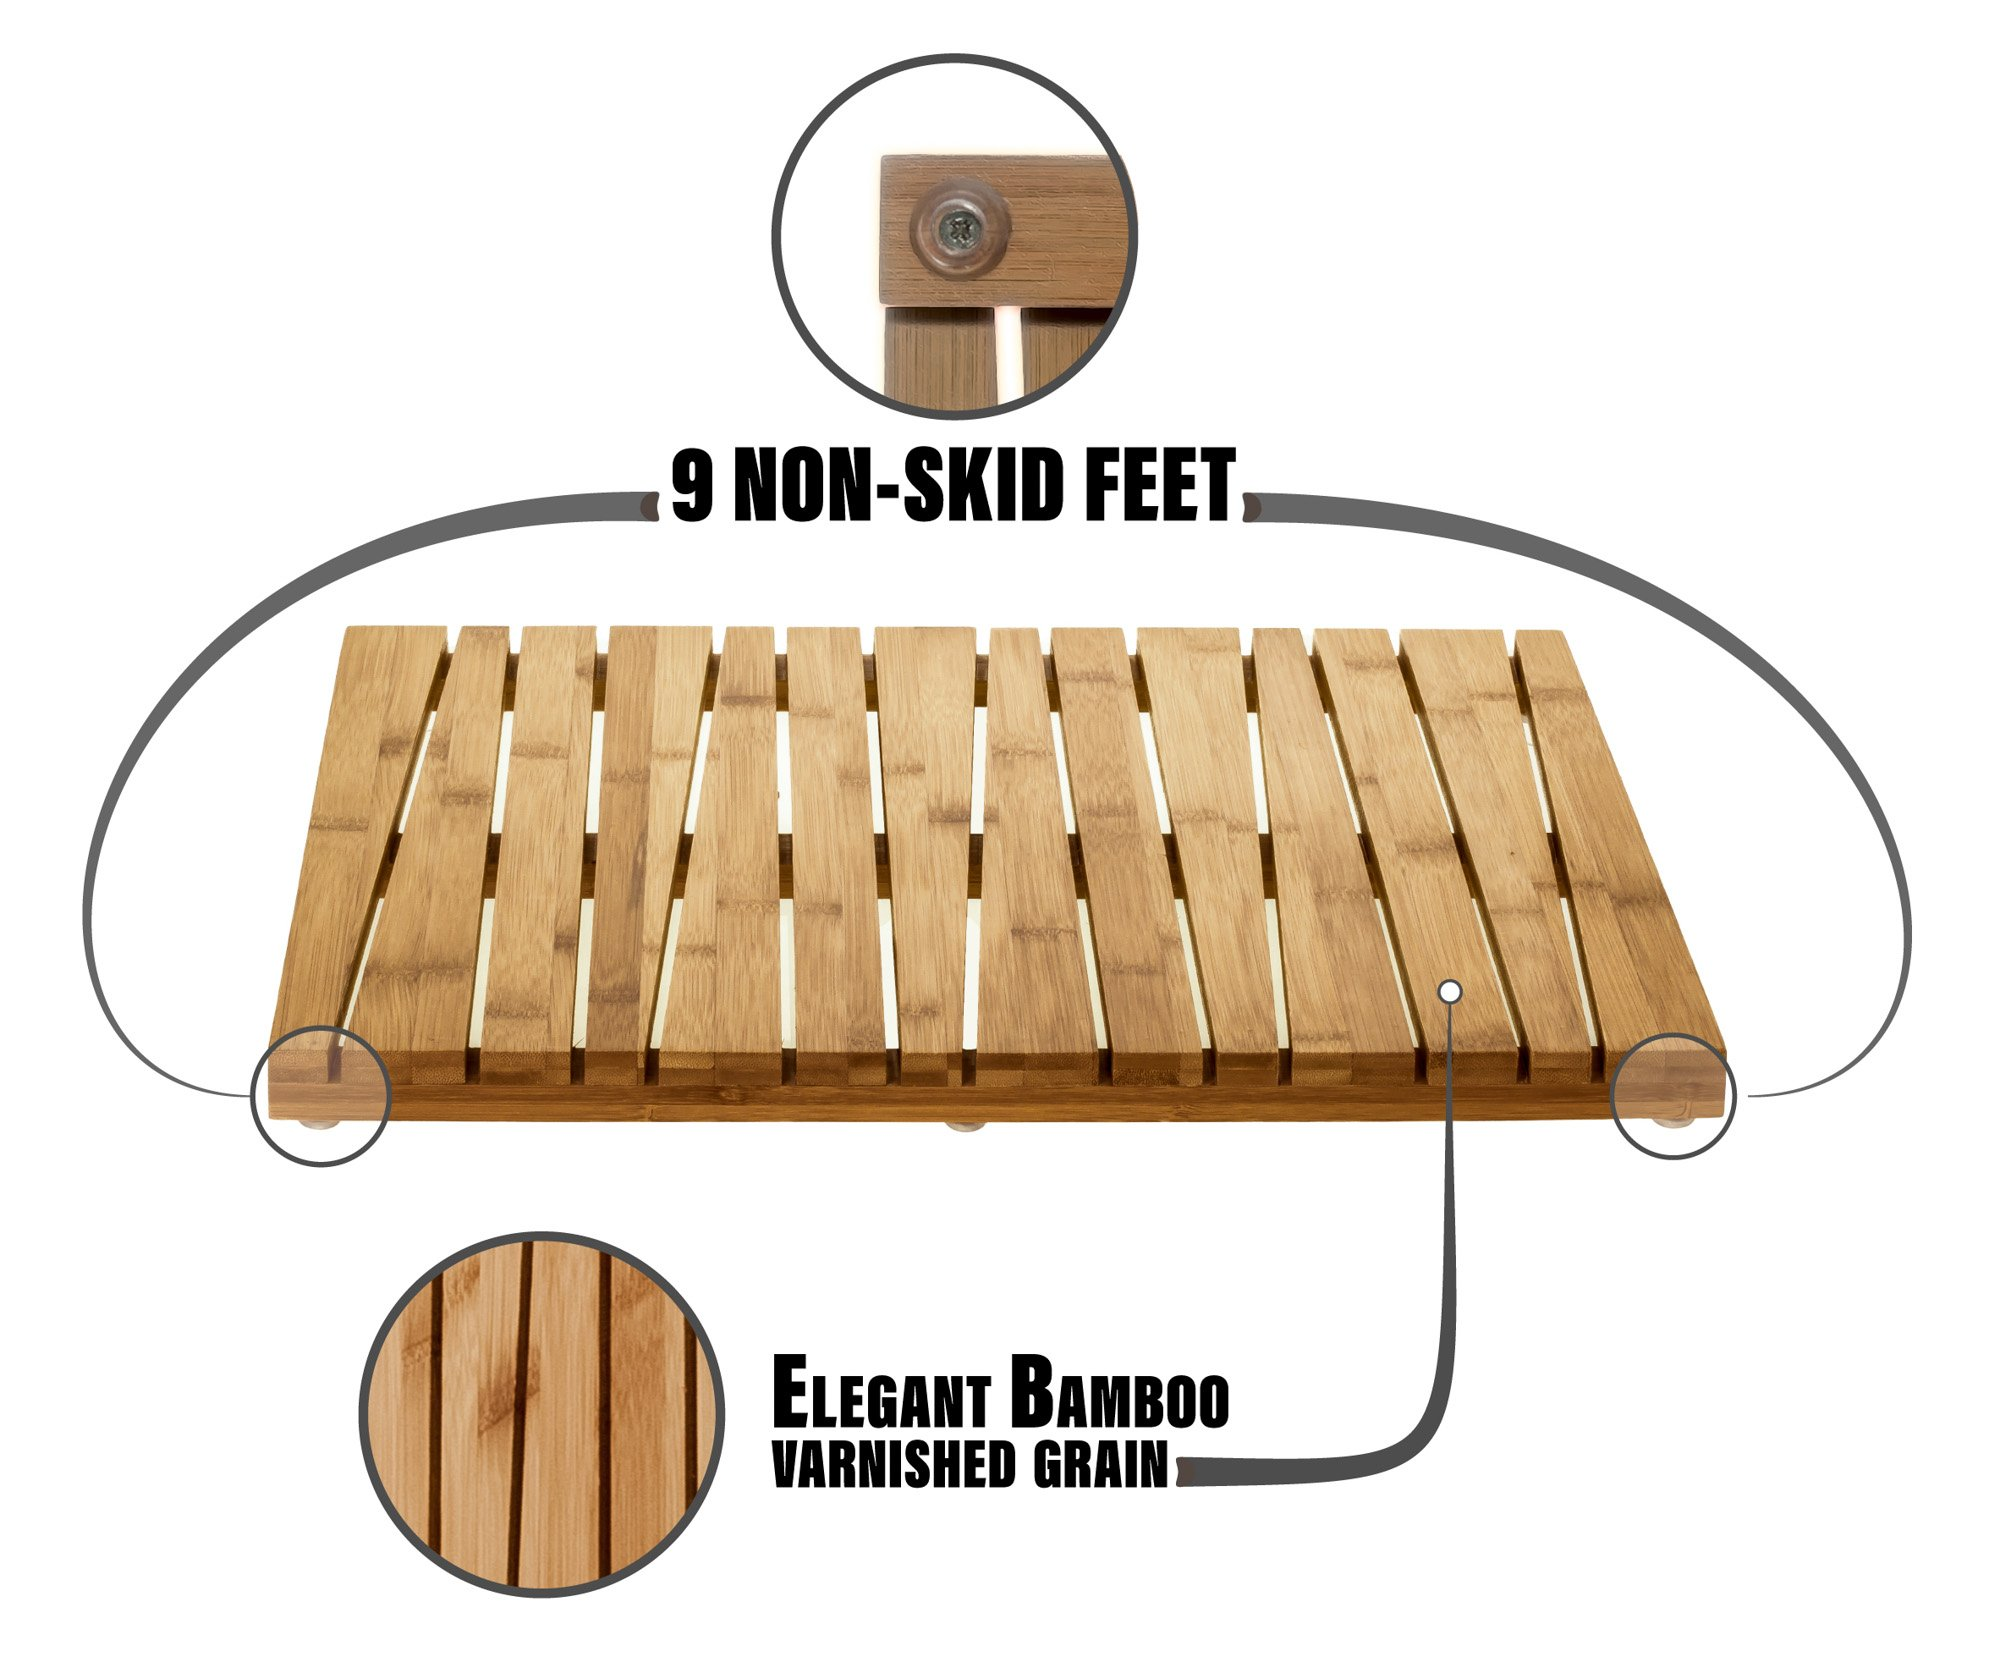 Prosumer's Choice Natural Bamboo Vented Floor Mat for Bathtub or Bath Floor Spa/Estate Shower w/Skid Resistant Feet by Prosumer's Choice (Image #4)